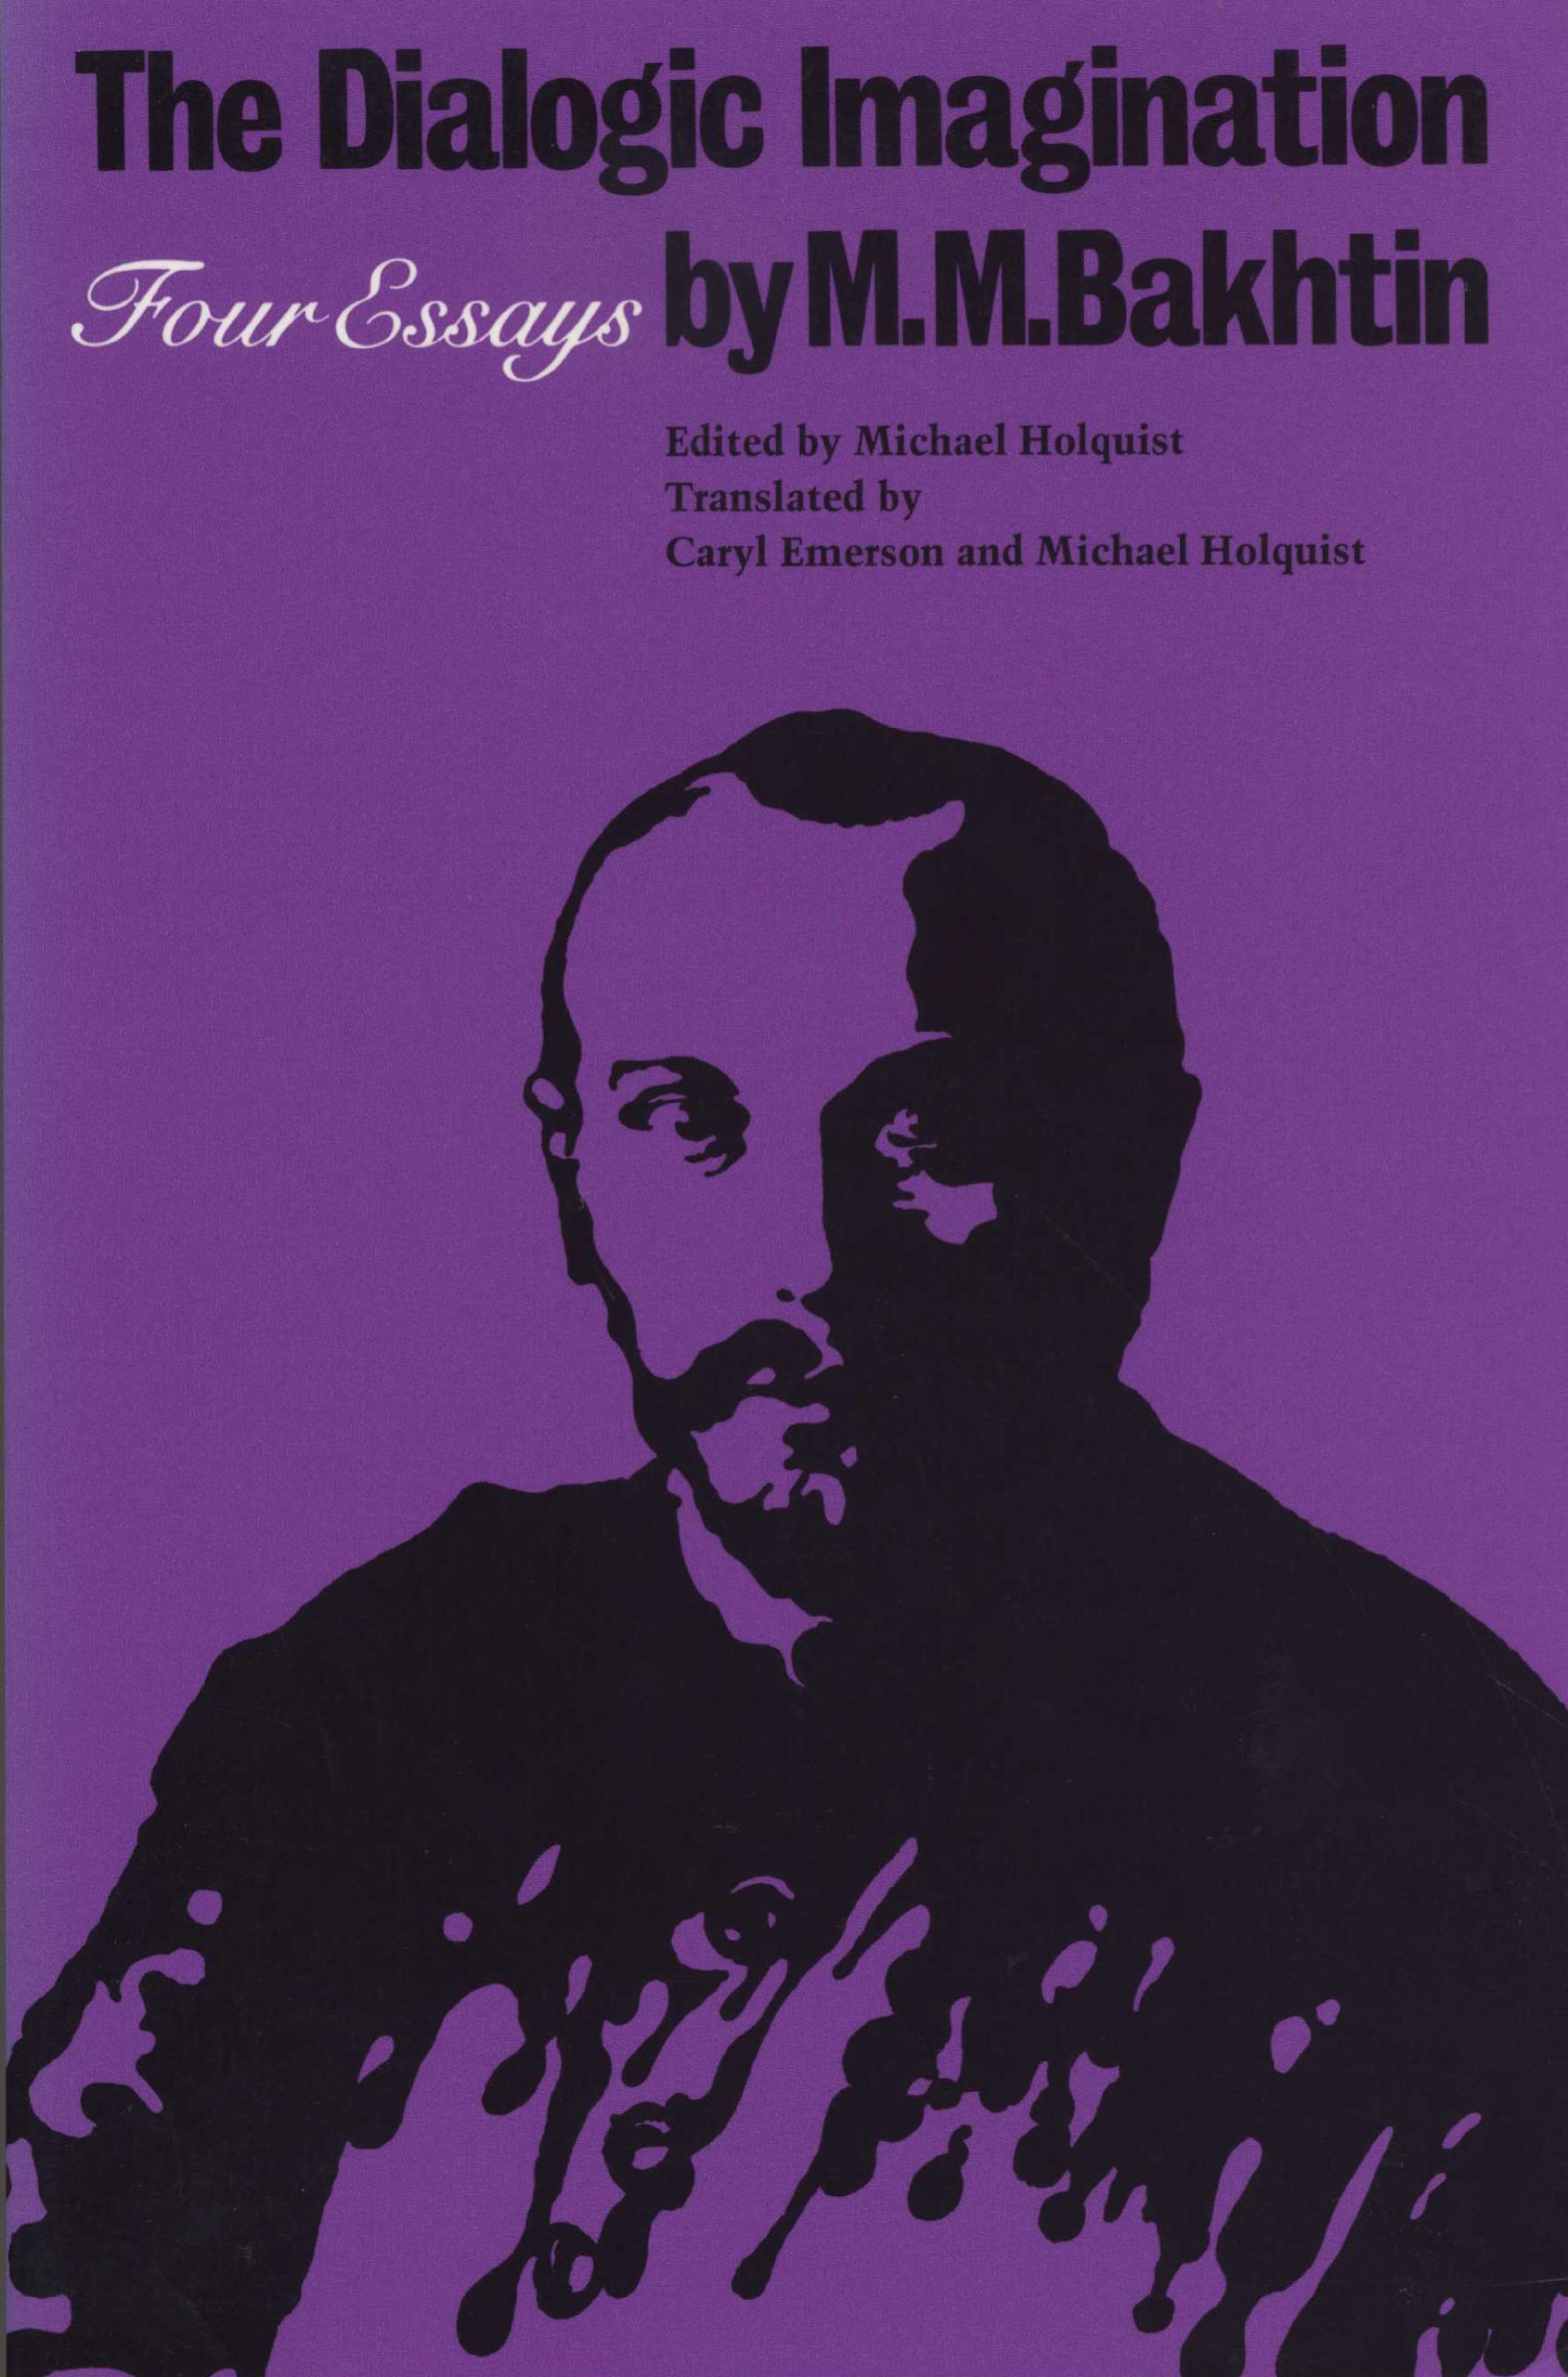 bakhtin speech genres and other late essays (notes) bakhtin, mikhail speech genres and other late essays trans vw mcgee austin: u of texas p, 1986 {mb—from introduction by vern w mcgee ix-xxiii}.